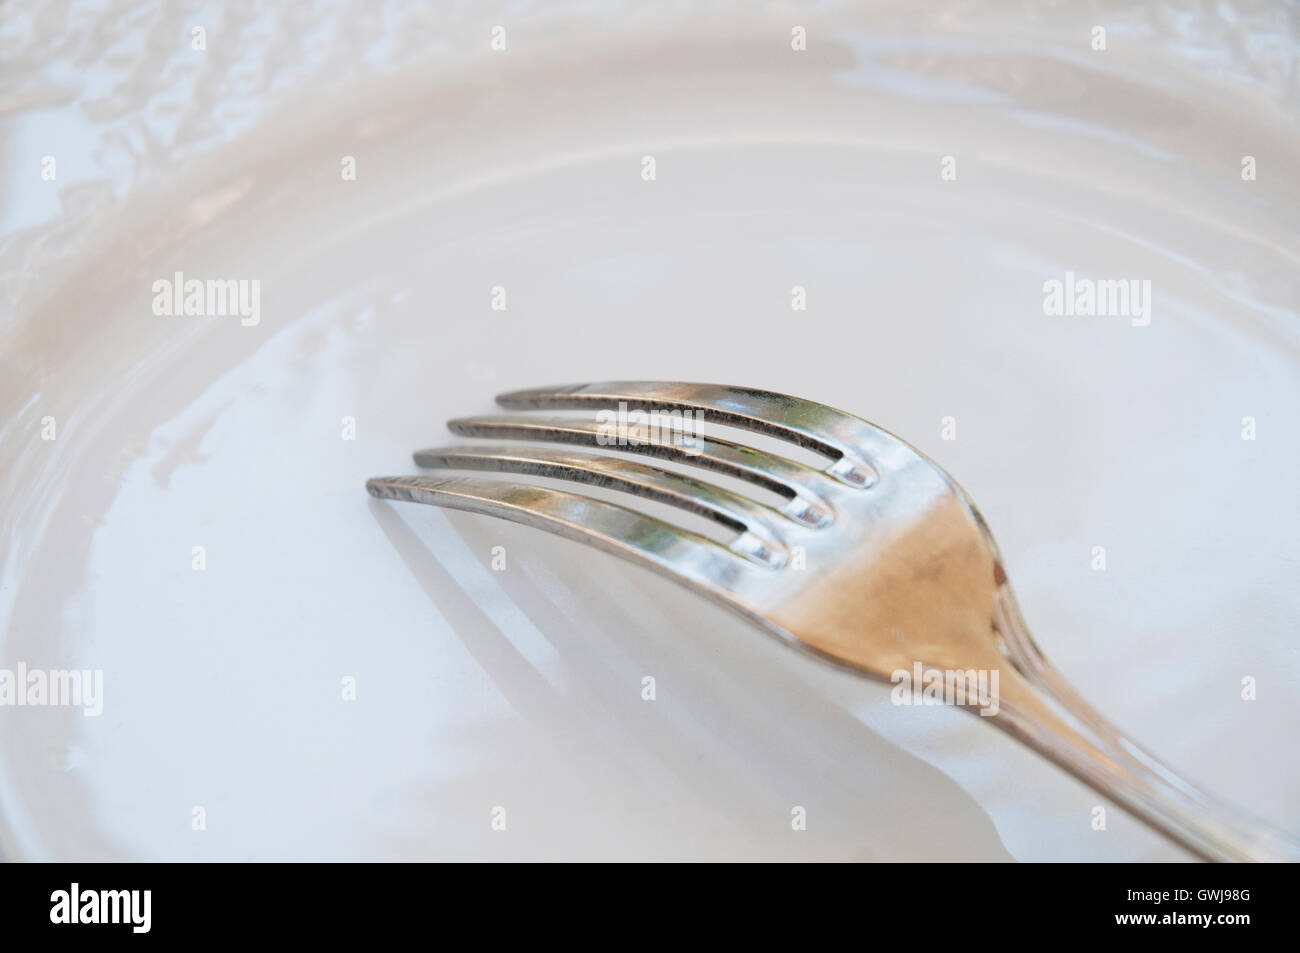 Fork on empty dish. Close view. Stock Photo